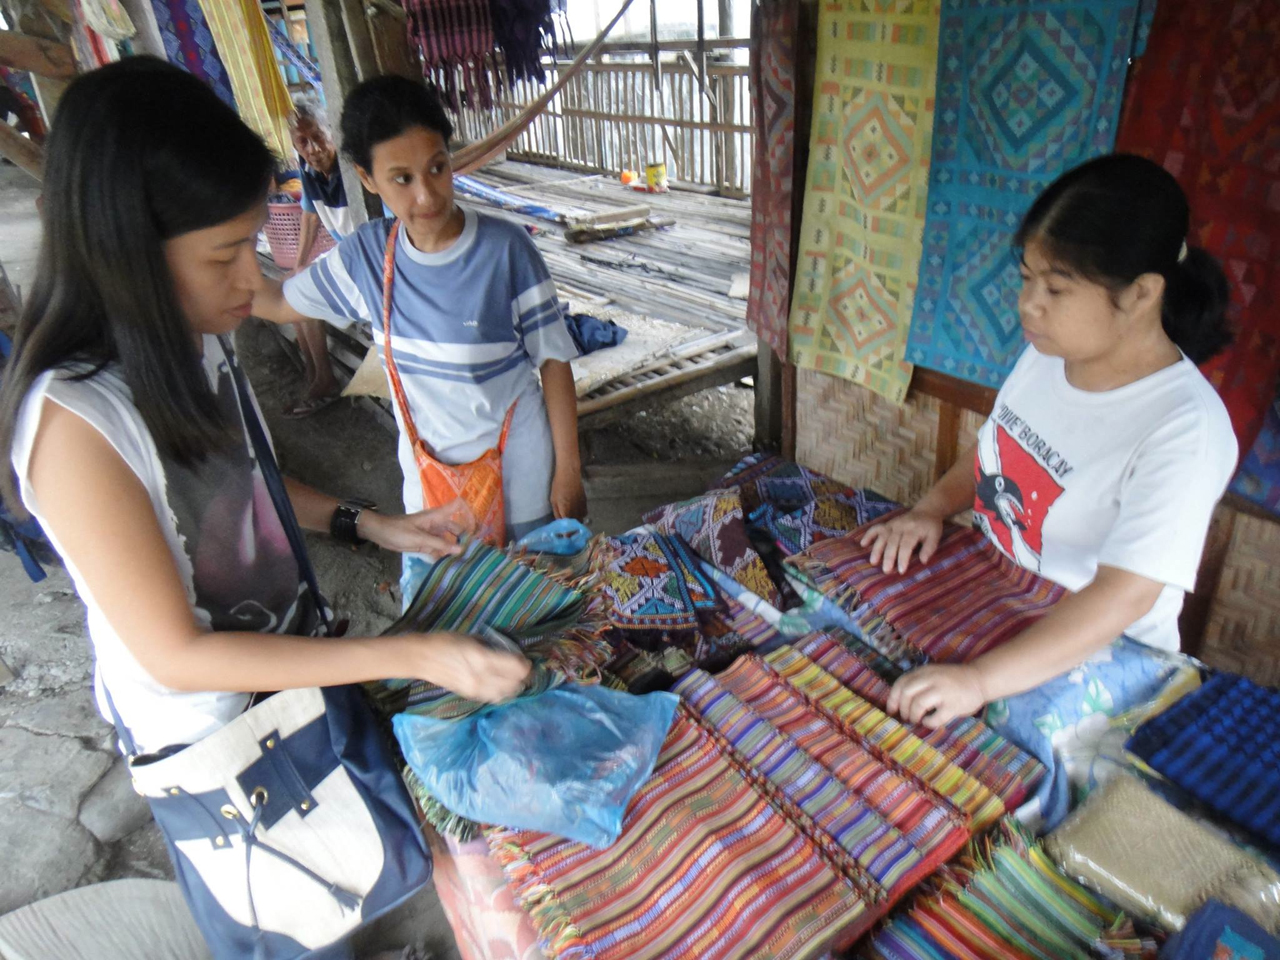 ENCOURAGEMENT. To encourage and retain the weavers who partner with Vesti, Rodriguez shows them bags made out of their textiles. Doing so gives them a sense of pride and belonging.